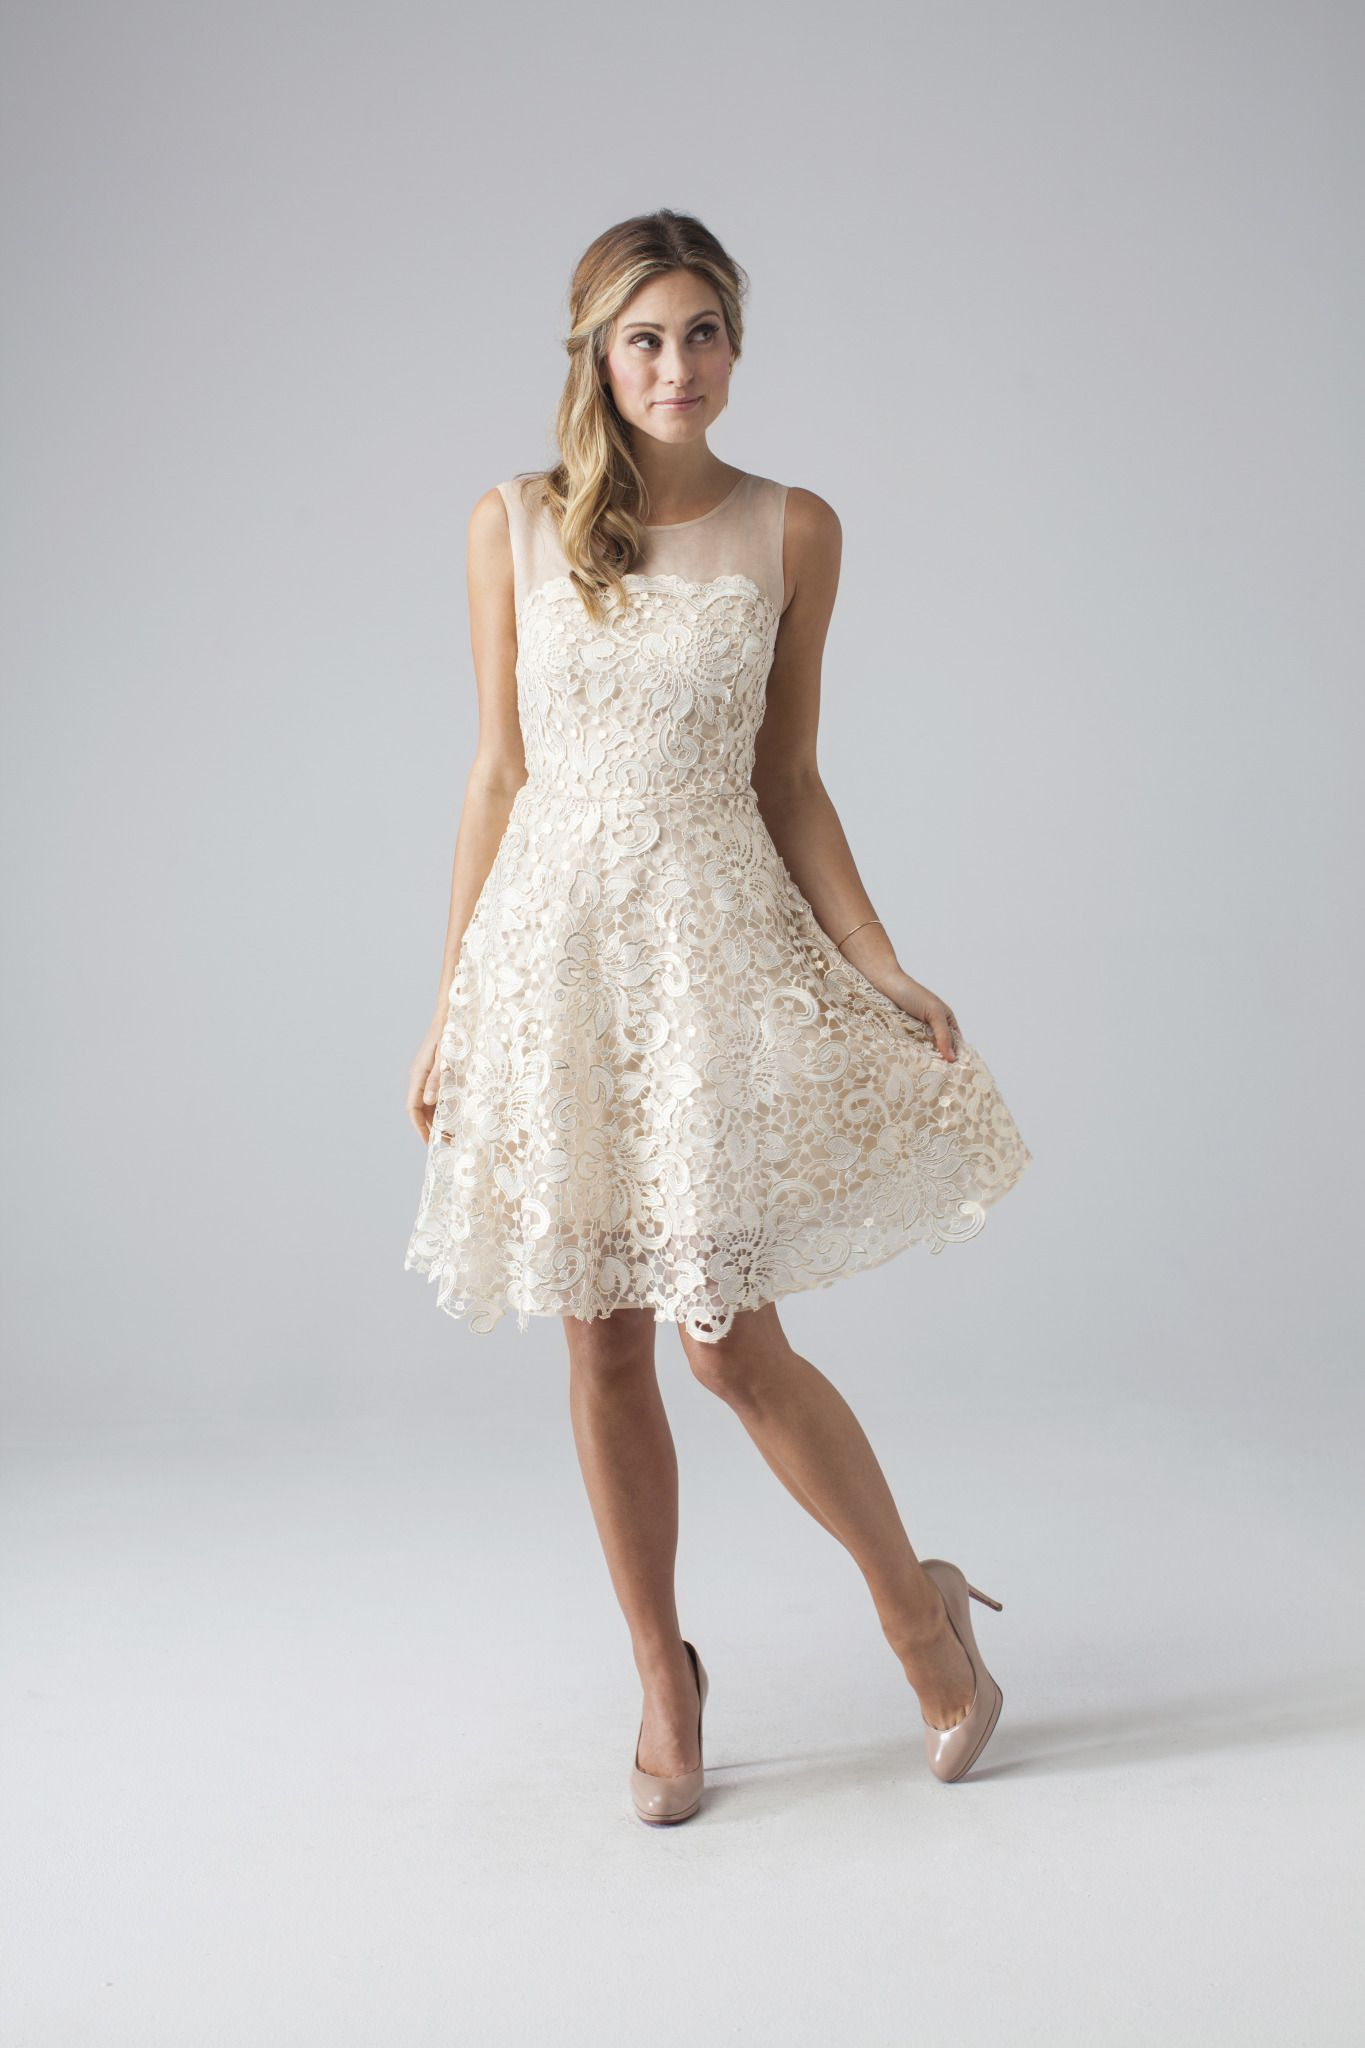 Get Ready For These Big Day Dresses That You Ll Actually Want To Wear Again And Again Boda Decoración De Unas